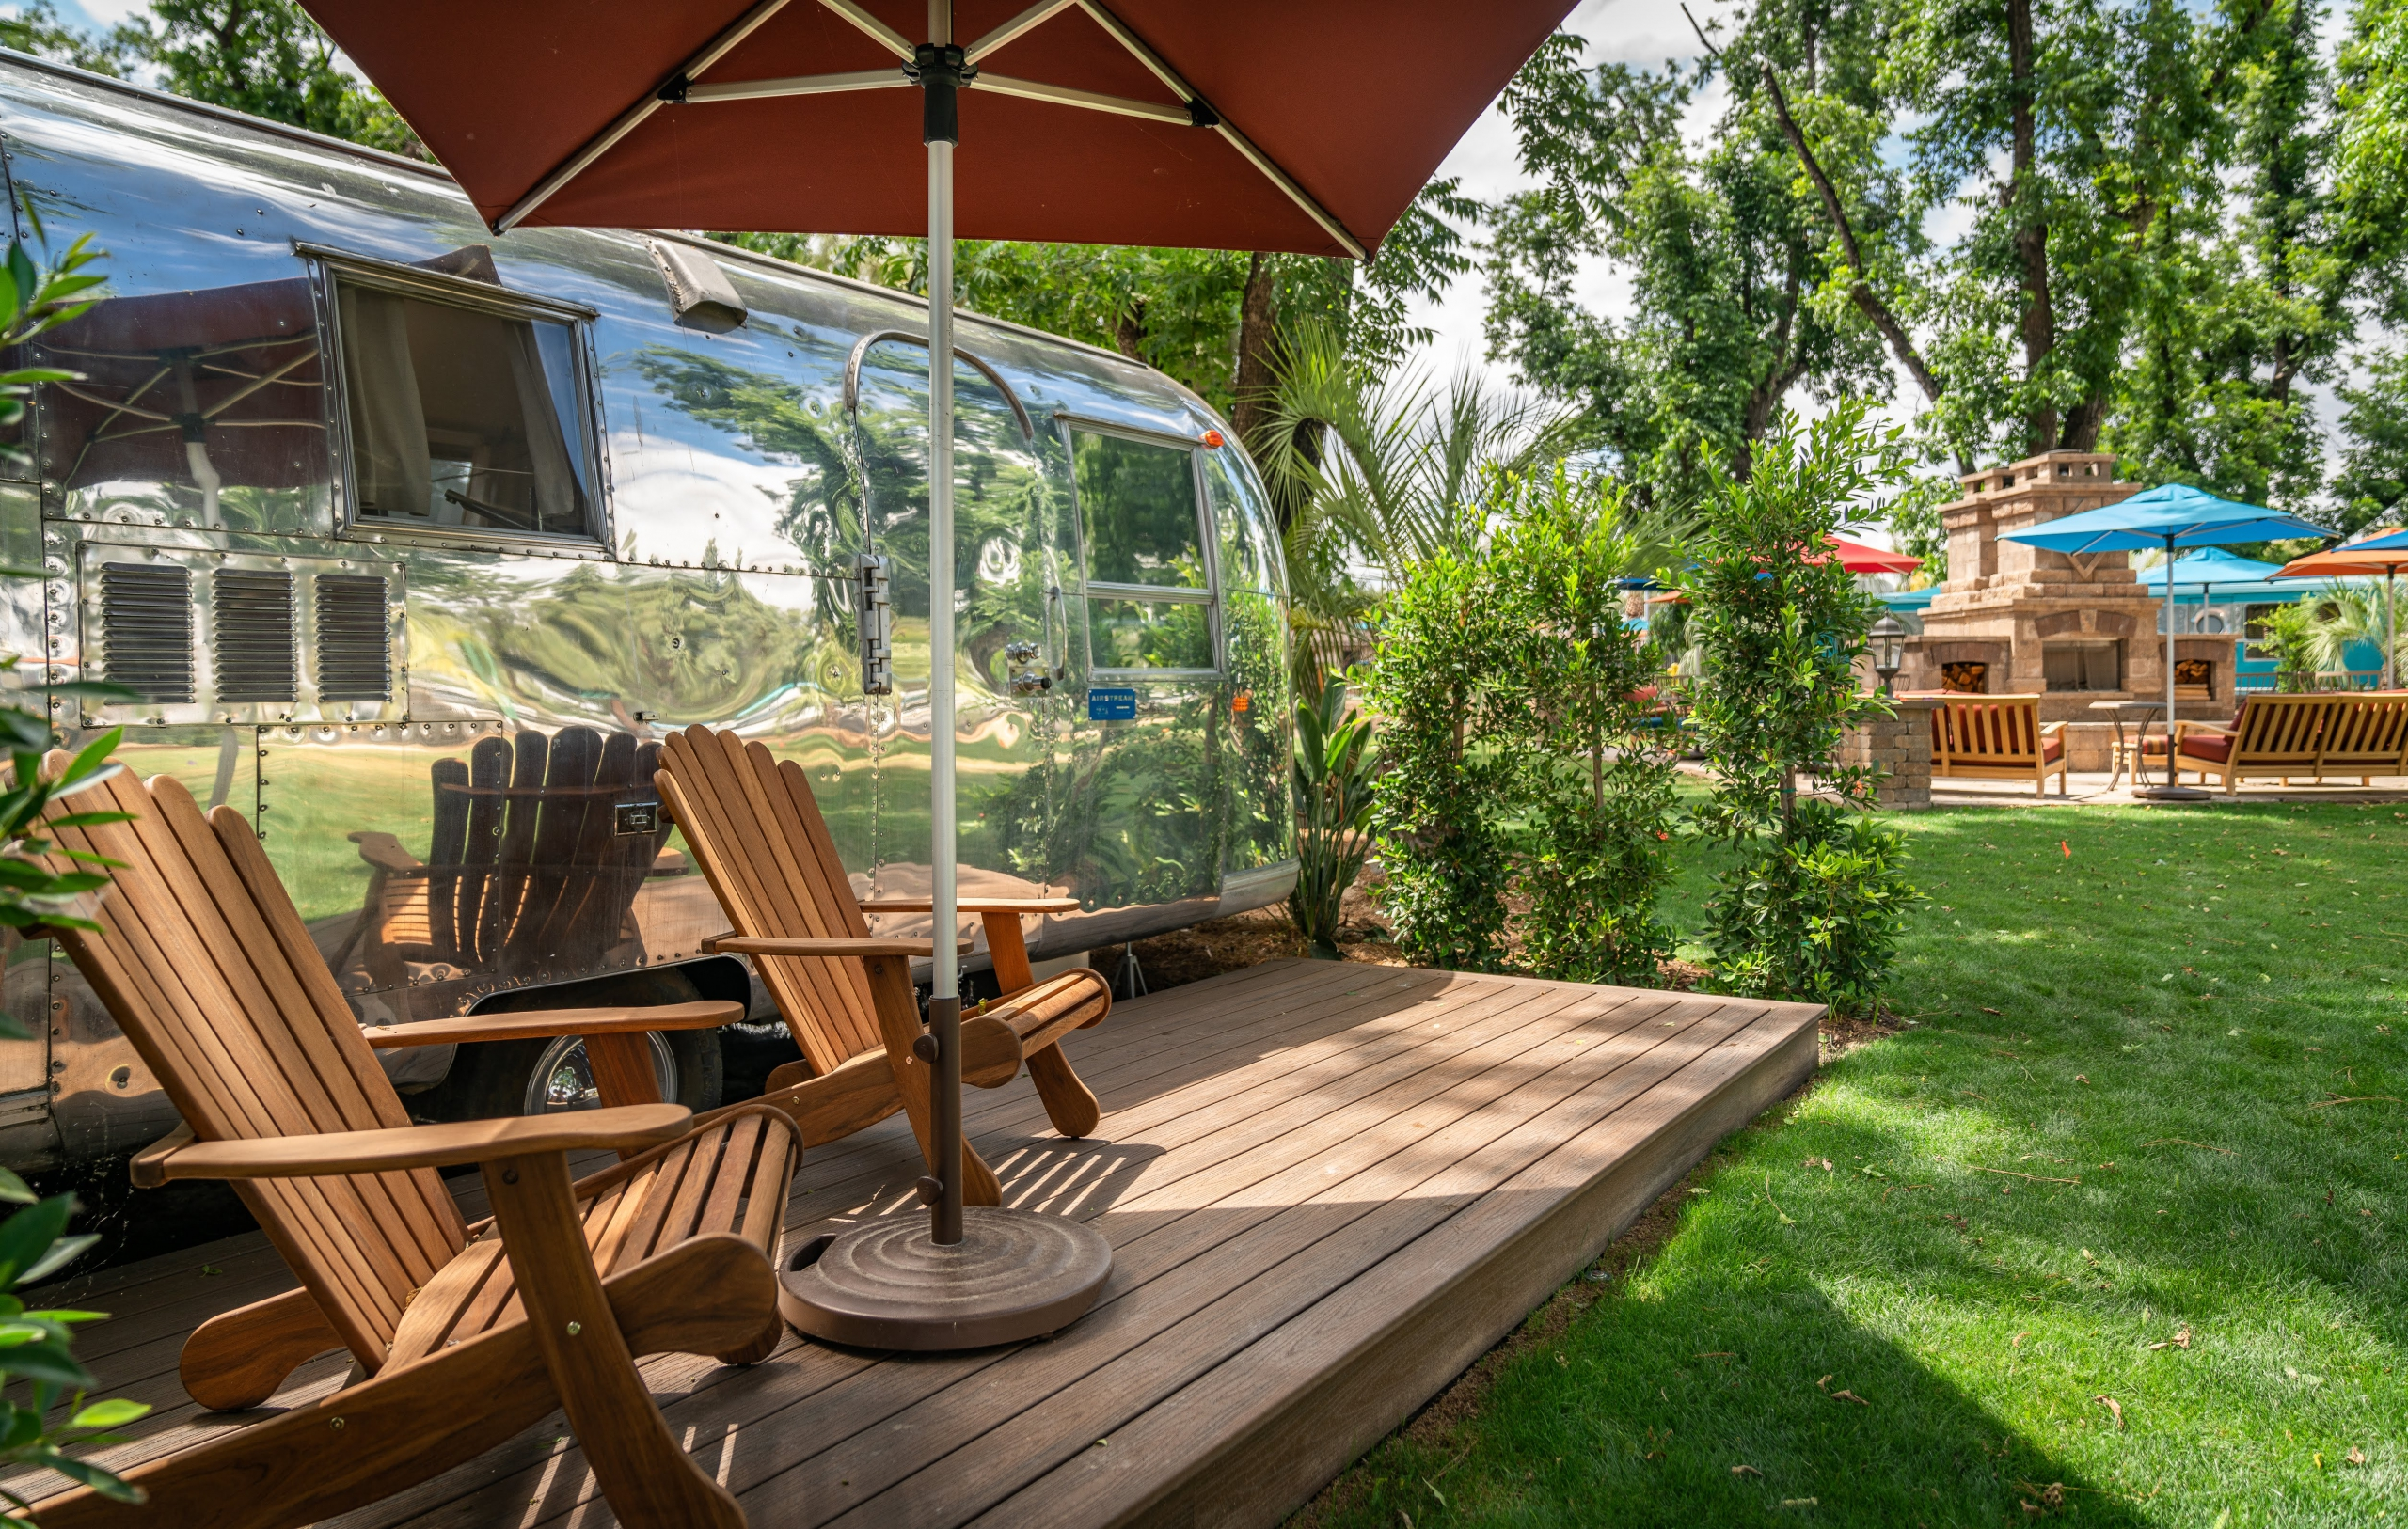 The Popularity of Glamping in Vintage Camper Trailers